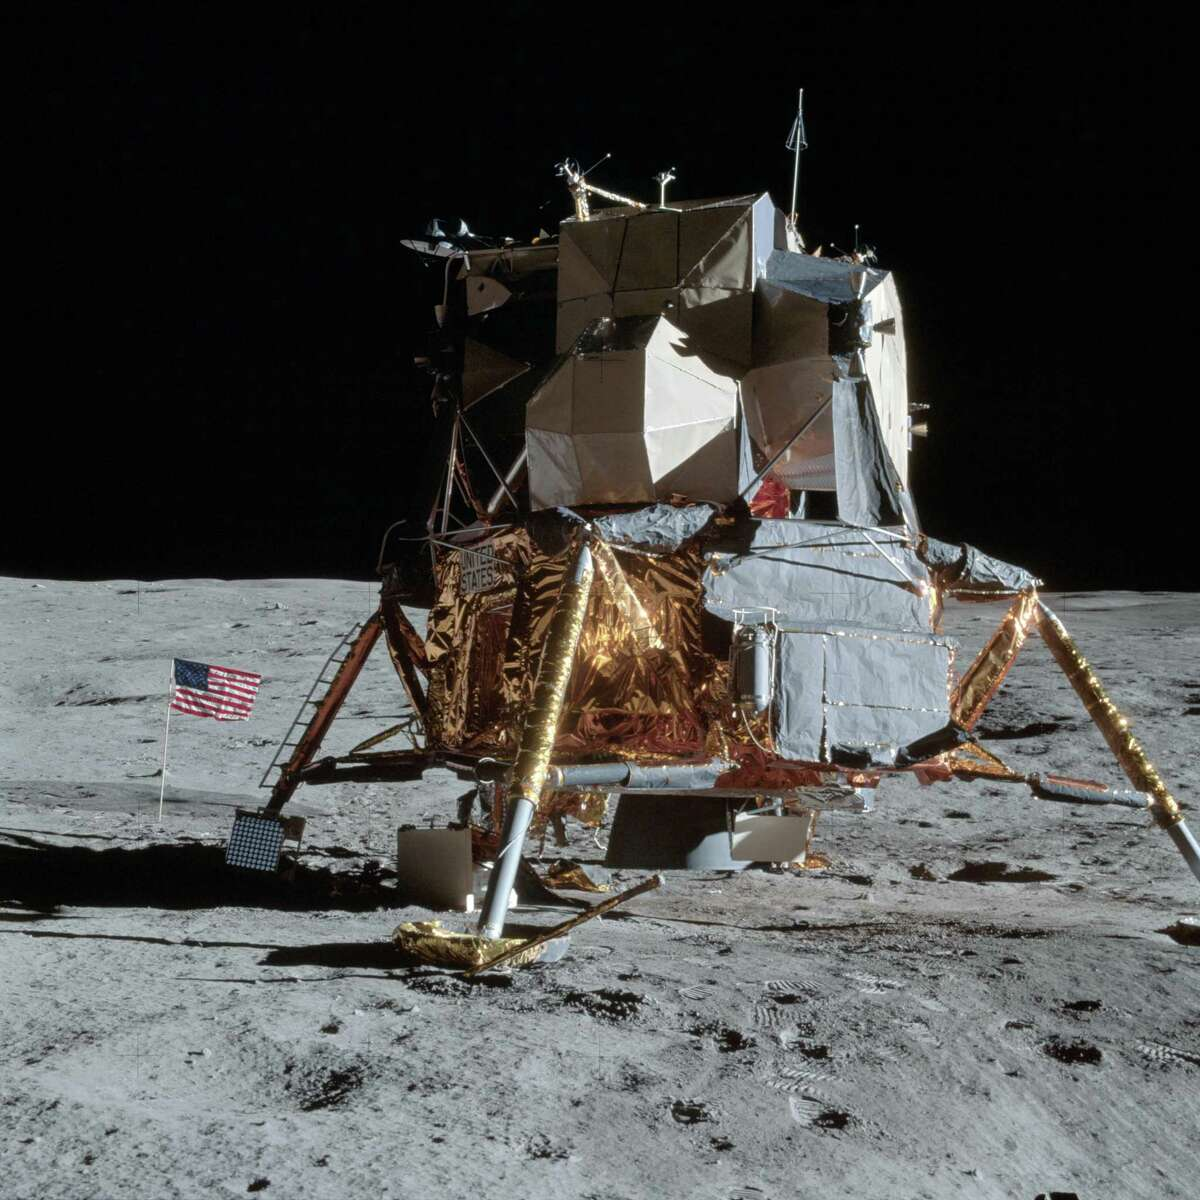 A view of the Apollo 14 Lunar Module on the moon as photographed on Feb. 5, 1971 during the first Apollo 14 extravehicular activity on the lunar surface. The astronauts have already deployed the U.S. flag. Astronauts Alan B. Shepard Jr. and Edgar D. Mitchell descended in the lunar module to explore the moon while Astronaut Stuart A. Roosa remained in orbit with the Command and Service Modules.